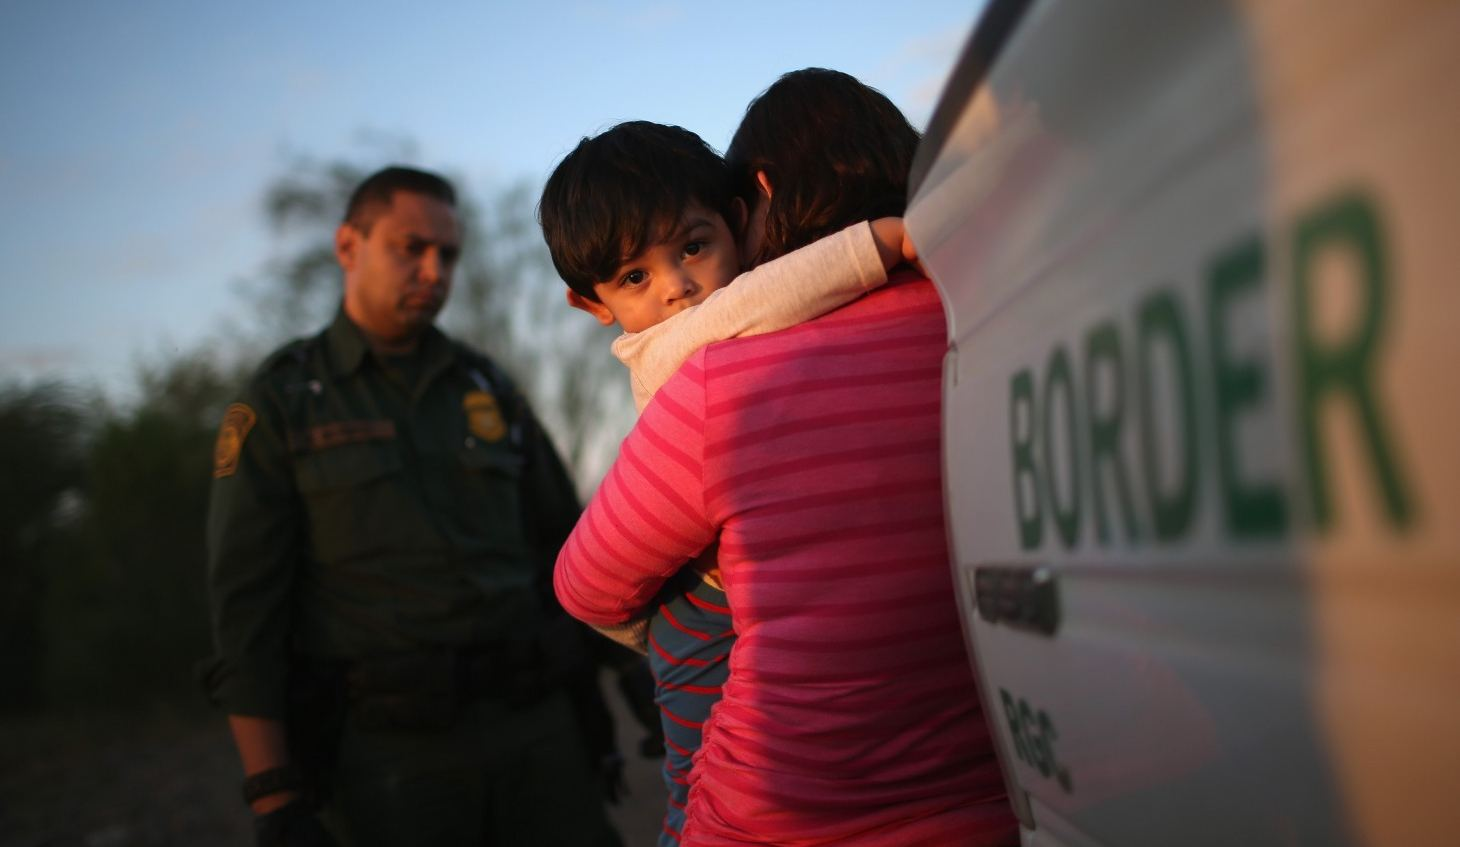 A one-year-old from El Salvador clings to his mother after she turned themselves in to Border Patrol agents on Dec. 7, 2015 near Rio Grande City, Texas. They had just illegally crossed the U.S.-Mexico border into Texas. (John Moore/Getty Images)